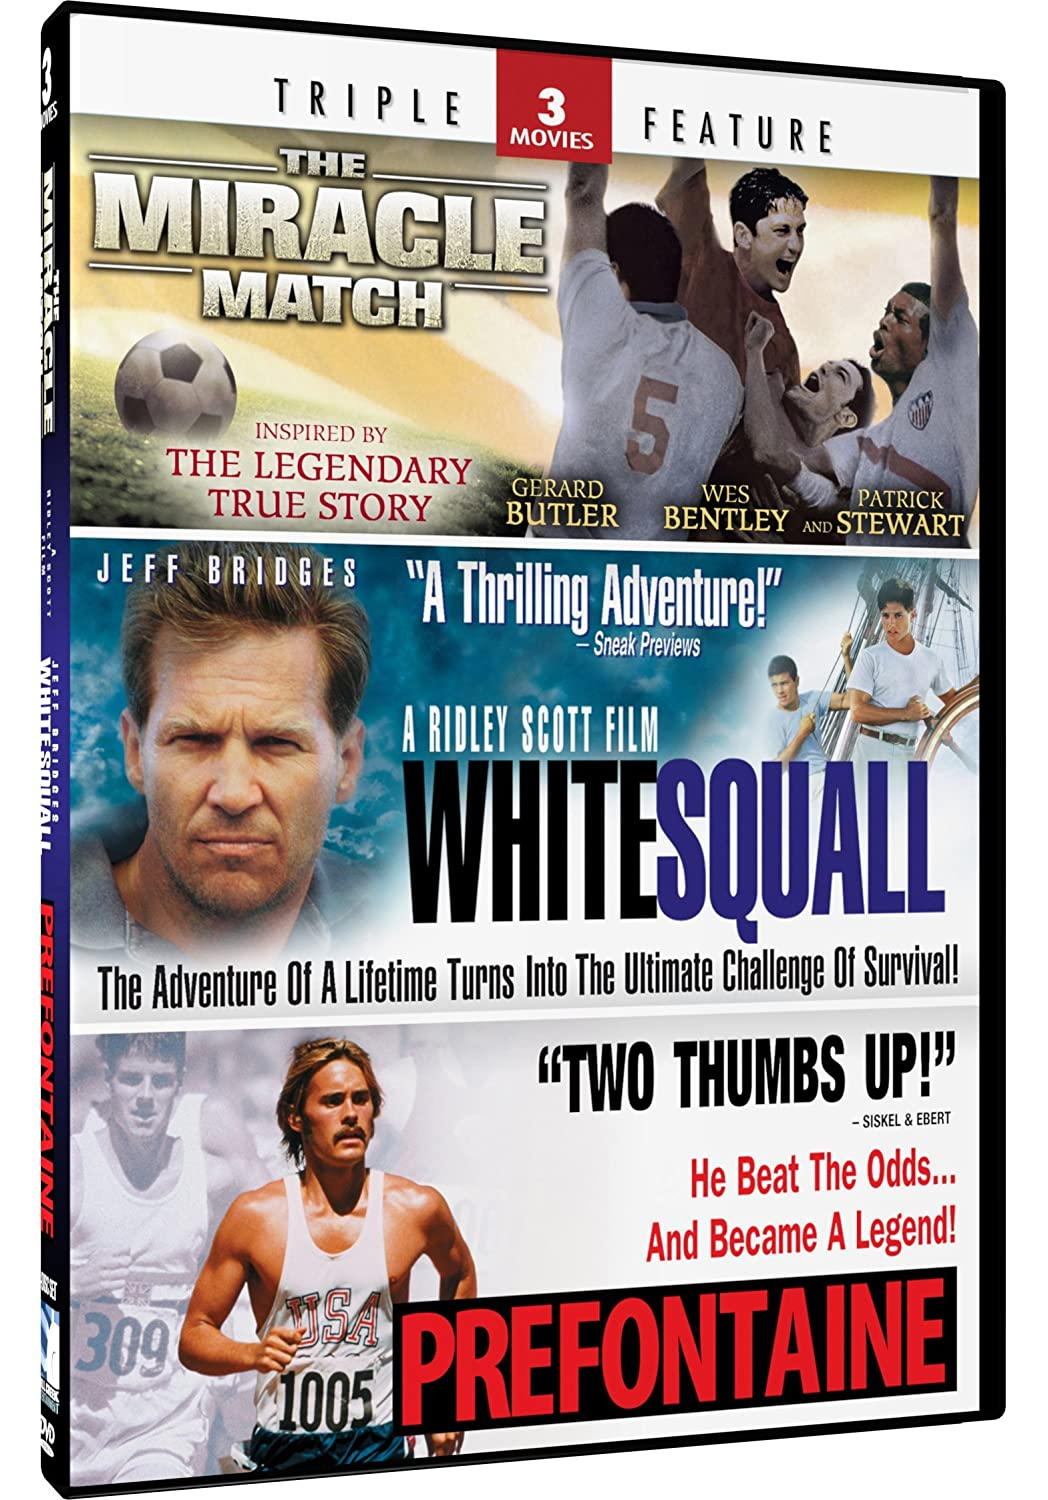 Miracle Match & Prefontane + White Squall - Triple Feature